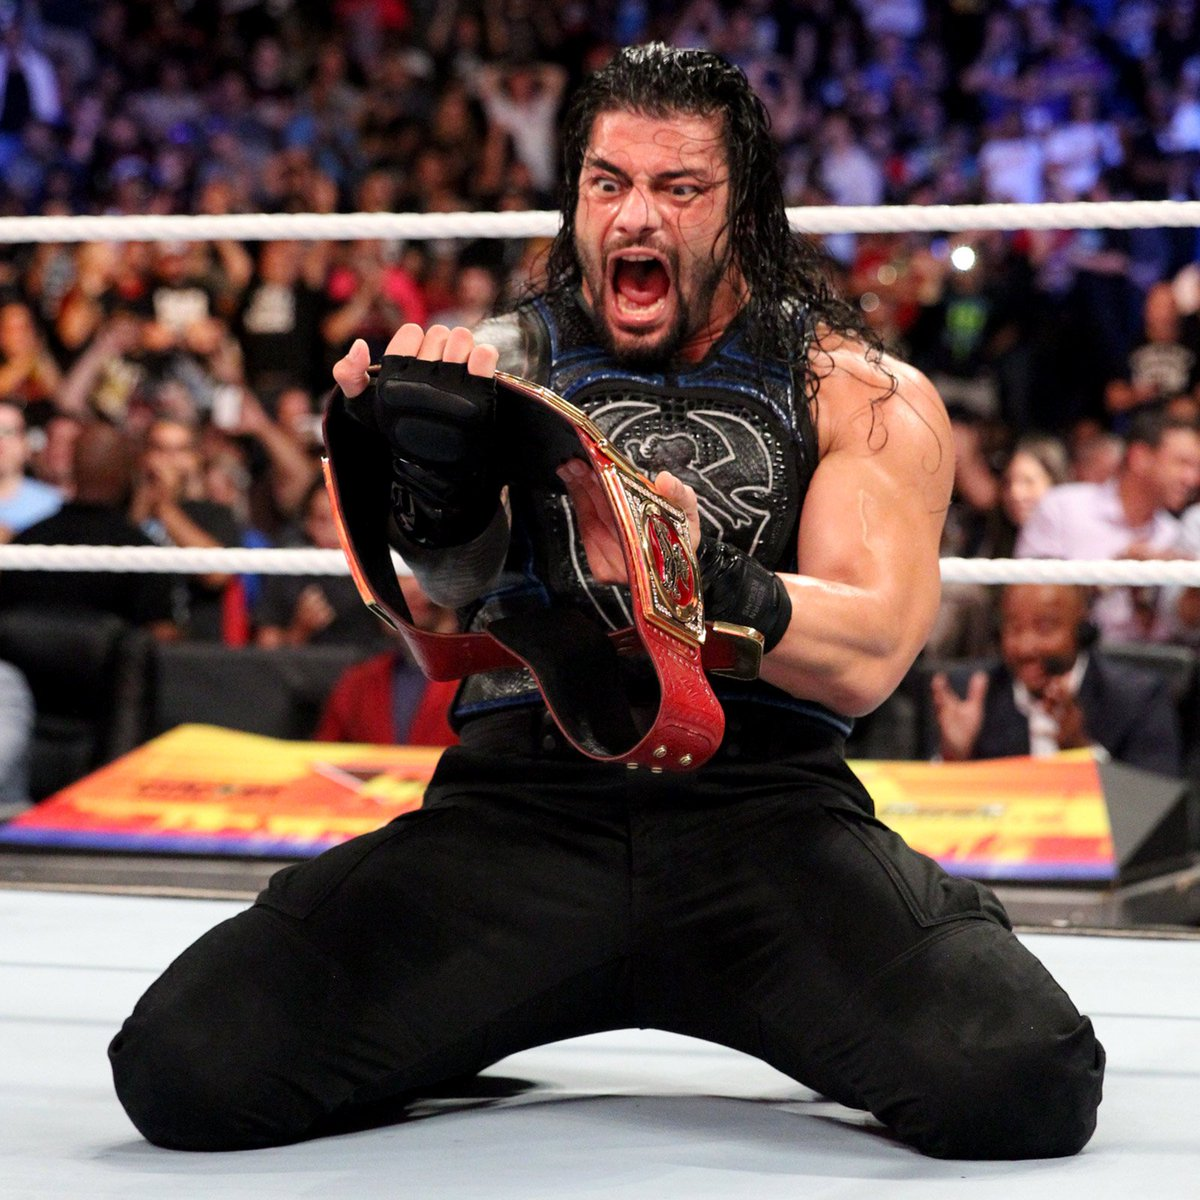 new wwe universal champion roman reigns reacts to his victory at